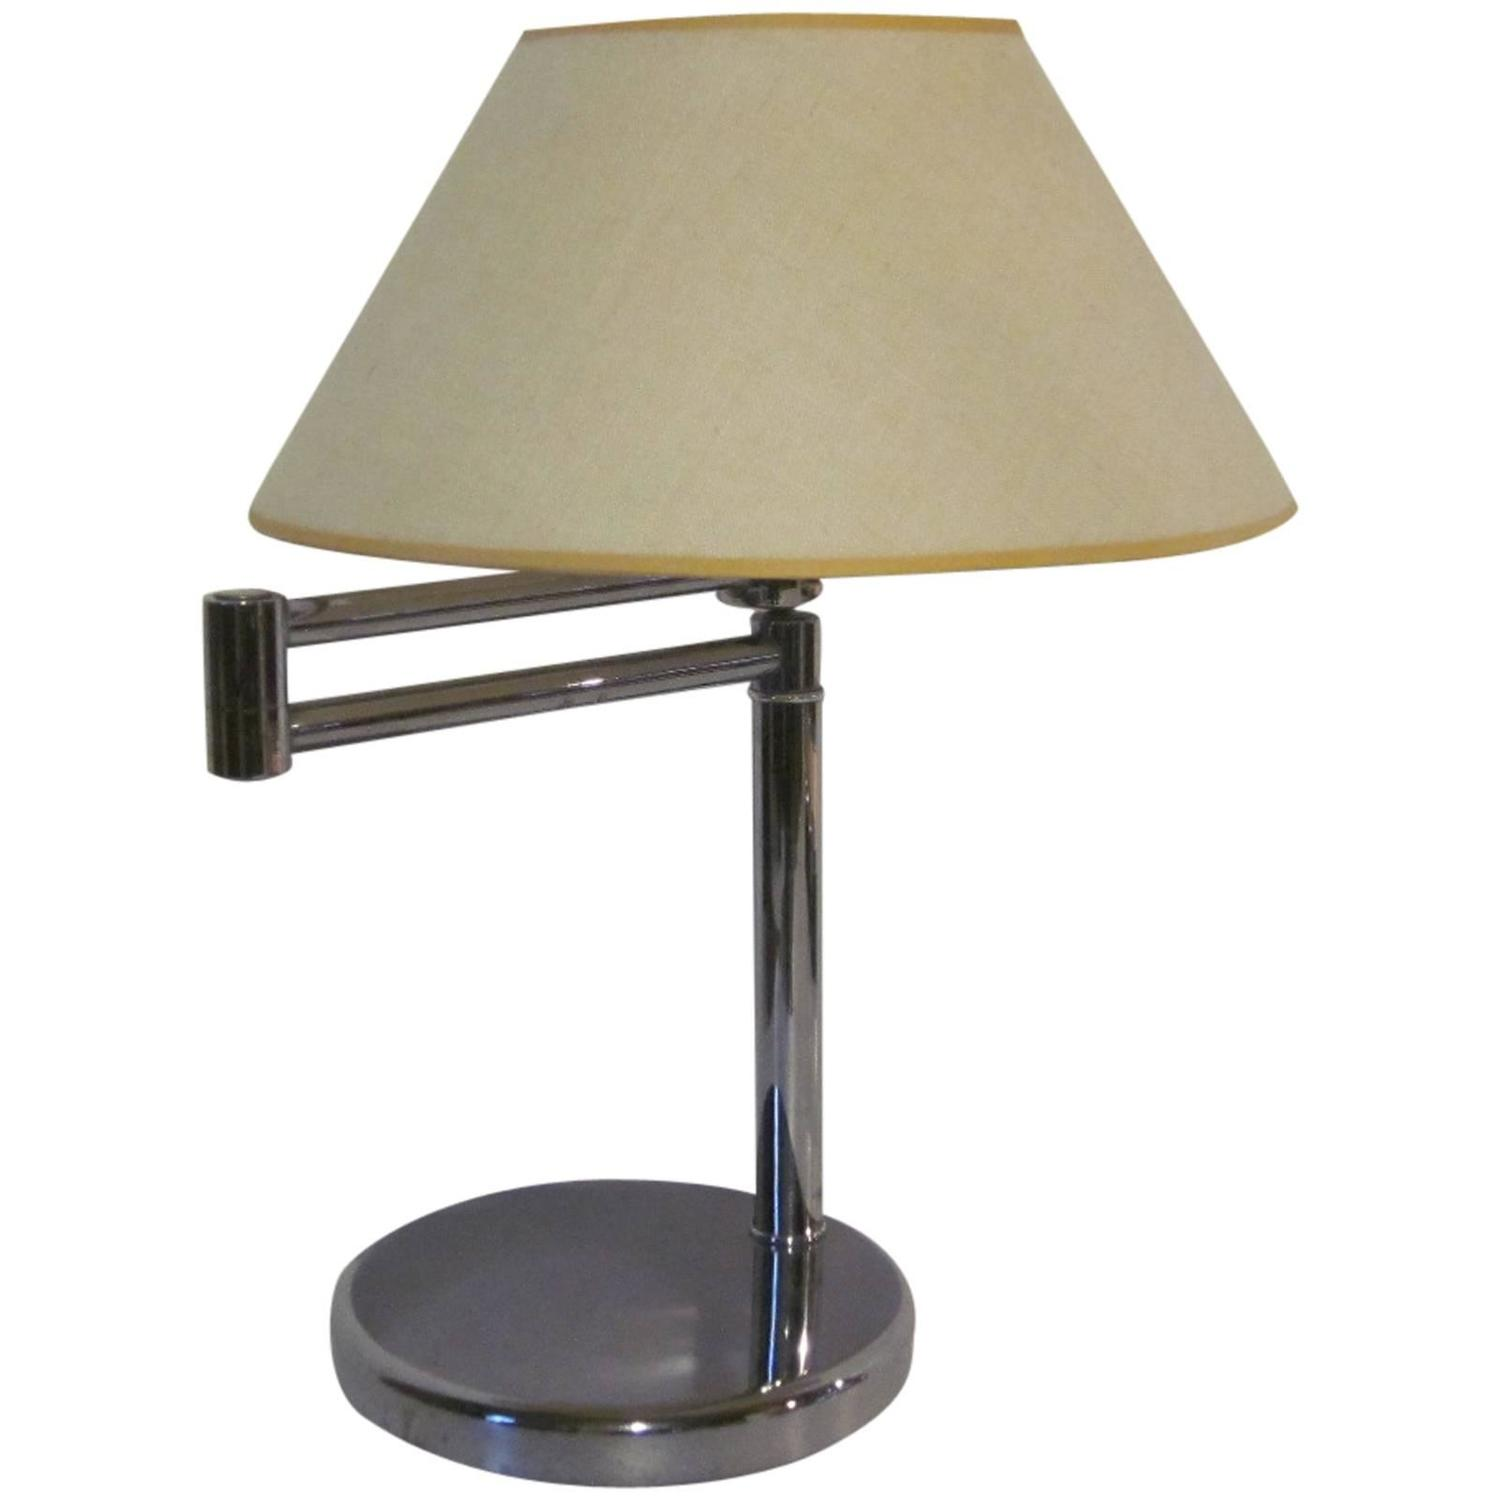 nessen chrome swing arm table lamp for sale at 1stdibs. Black Bedroom Furniture Sets. Home Design Ideas